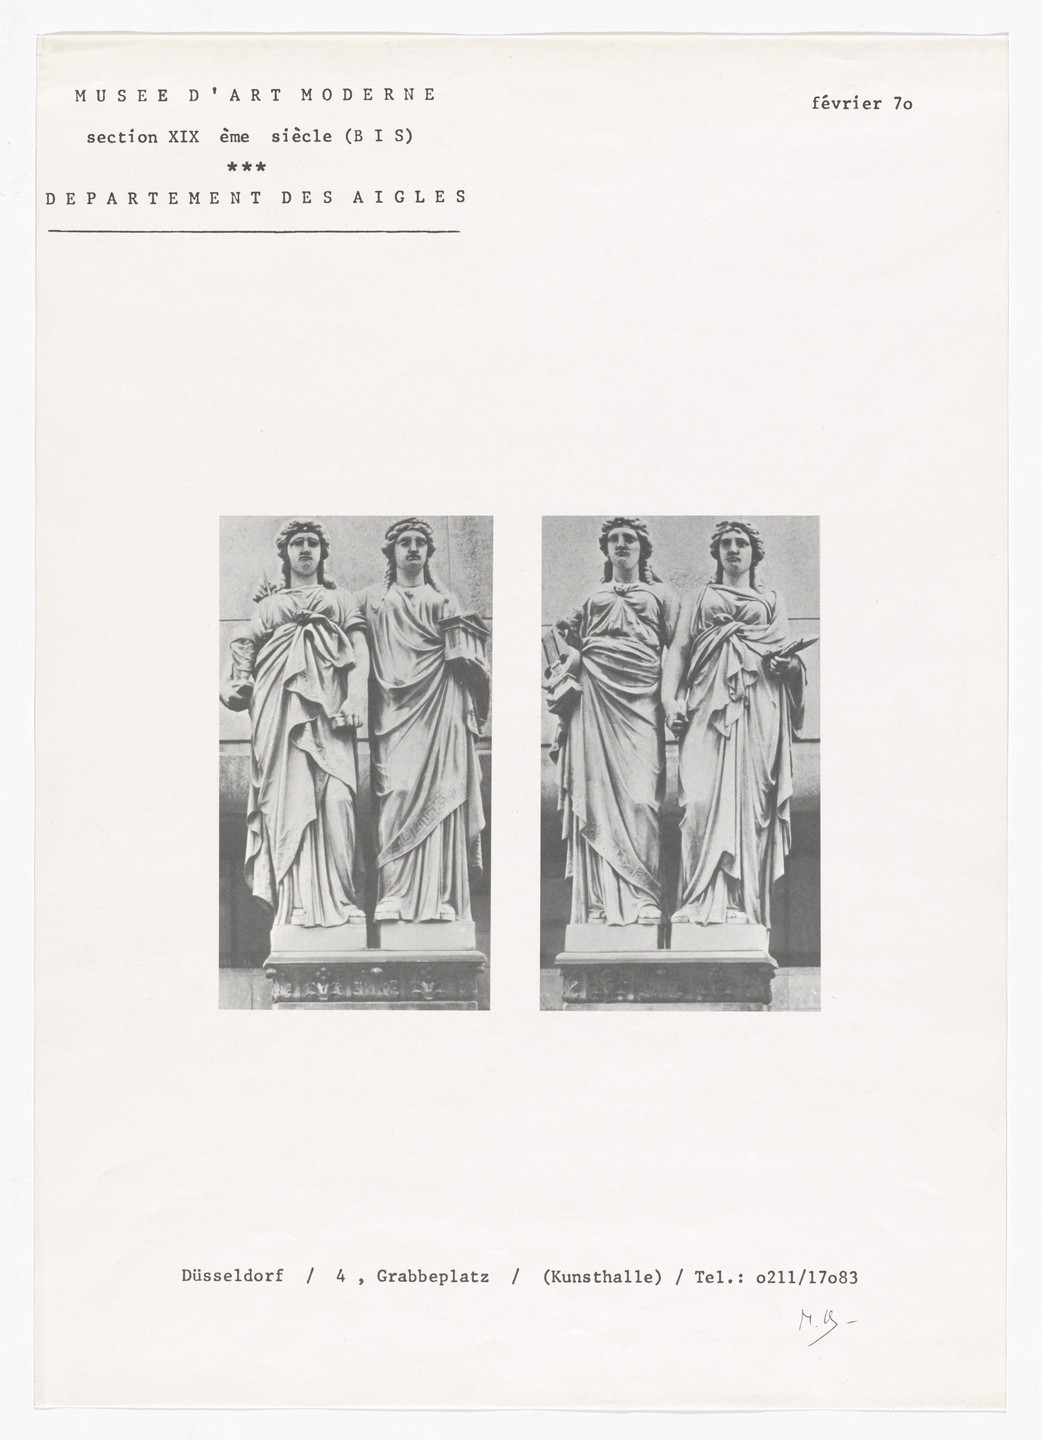 Marcel Broodthaers. Poster for Section XIXe siècle (BIS), Düsseldorf, 1970. 1970